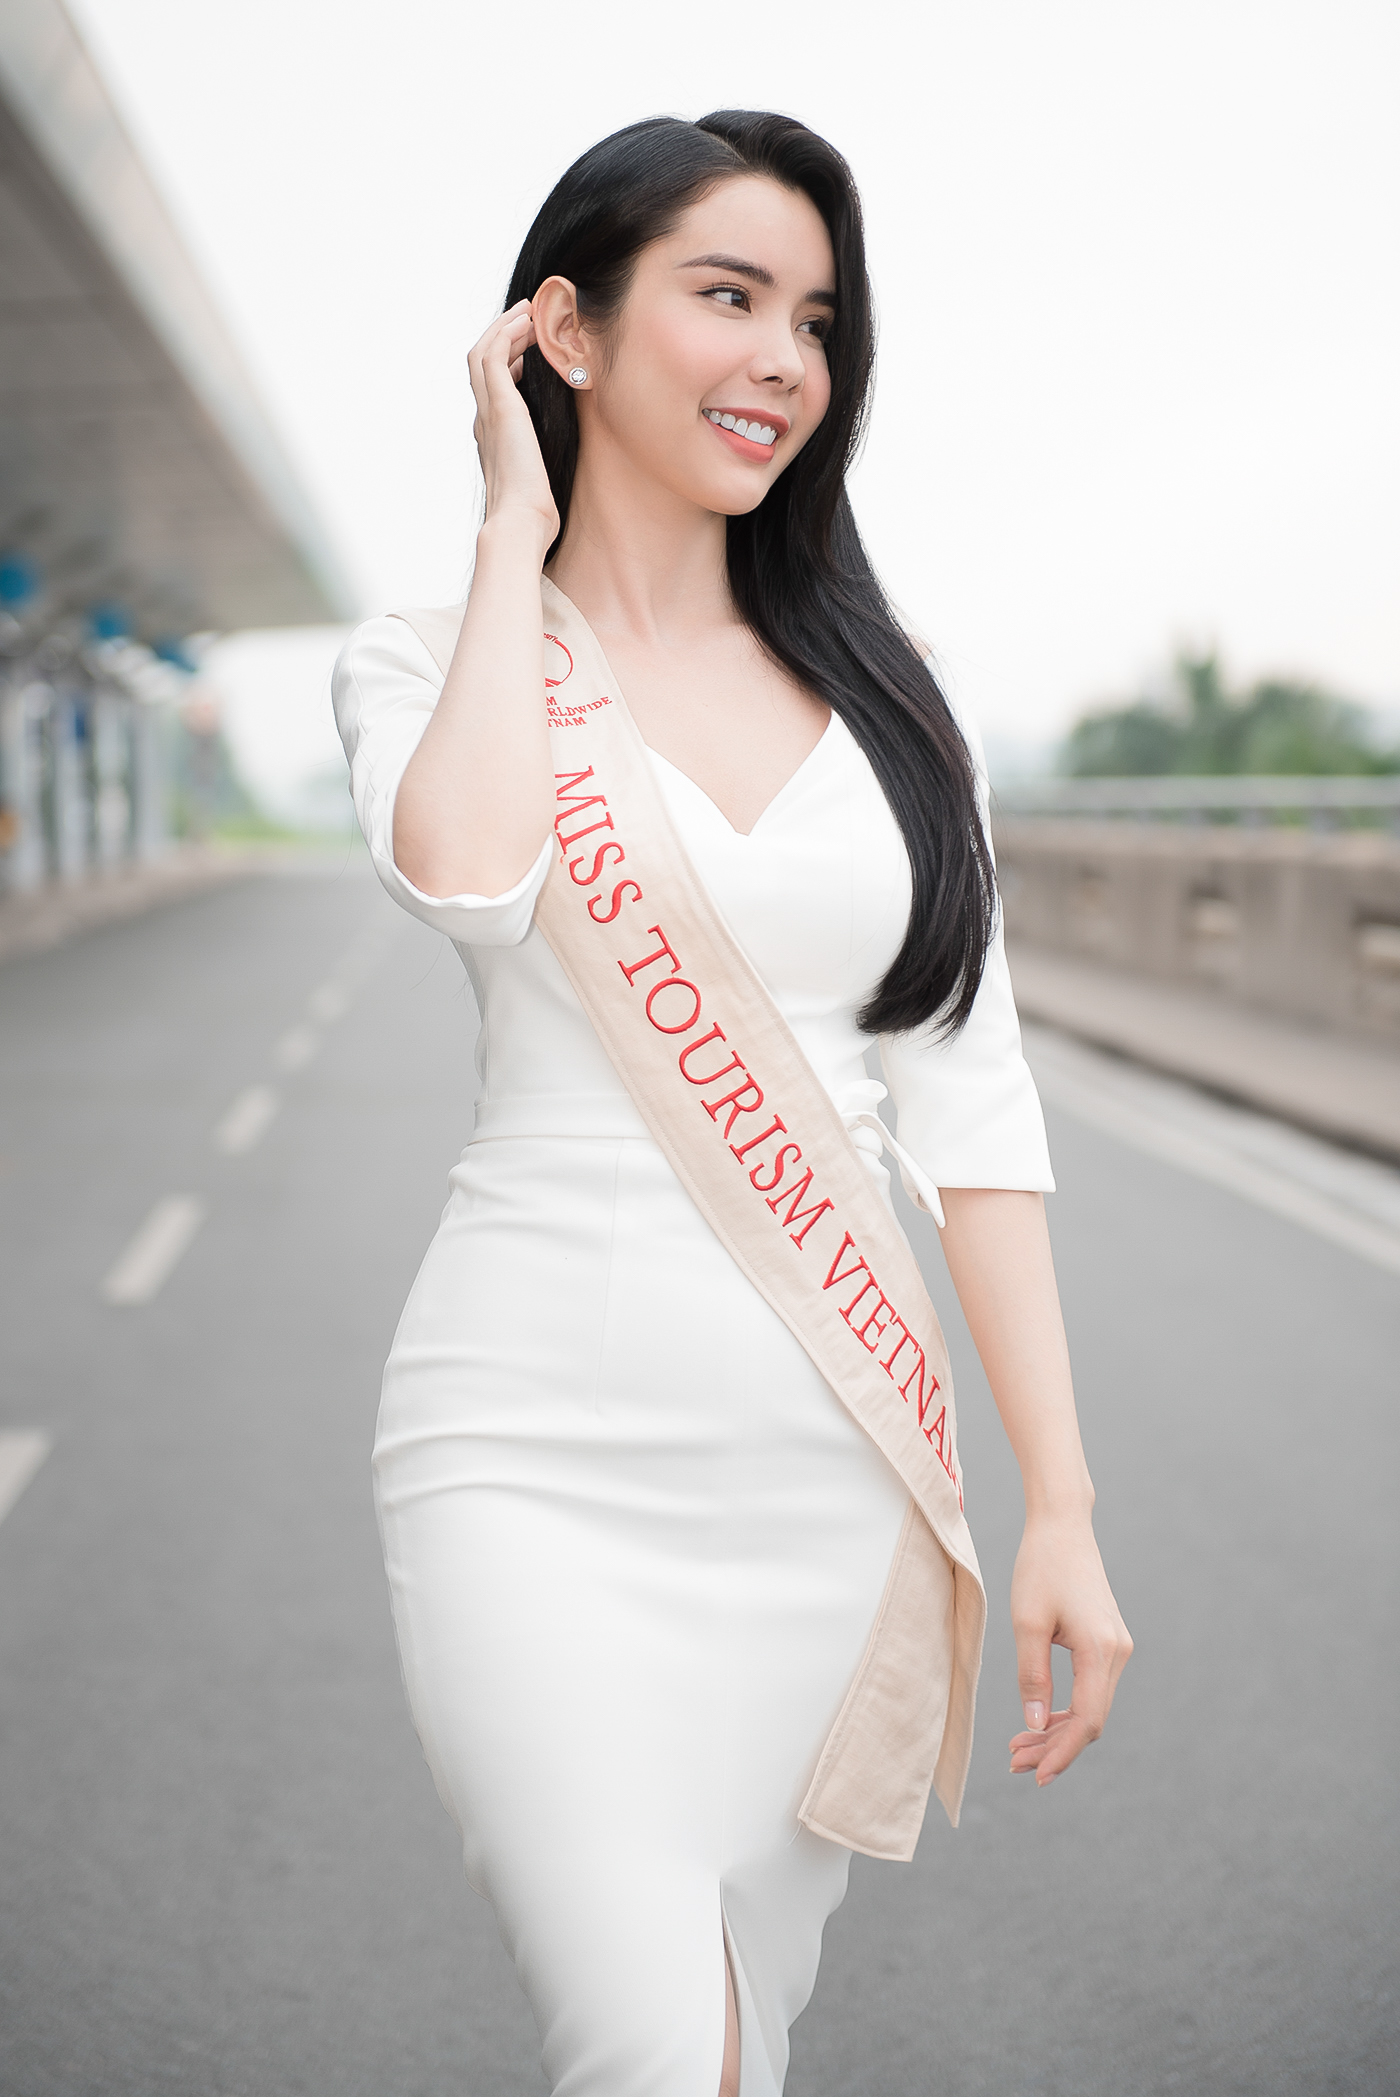 Lien Binh Phat tien Huynh Vy di thi Miss Tourism Queen Worldwide-Hinh-3